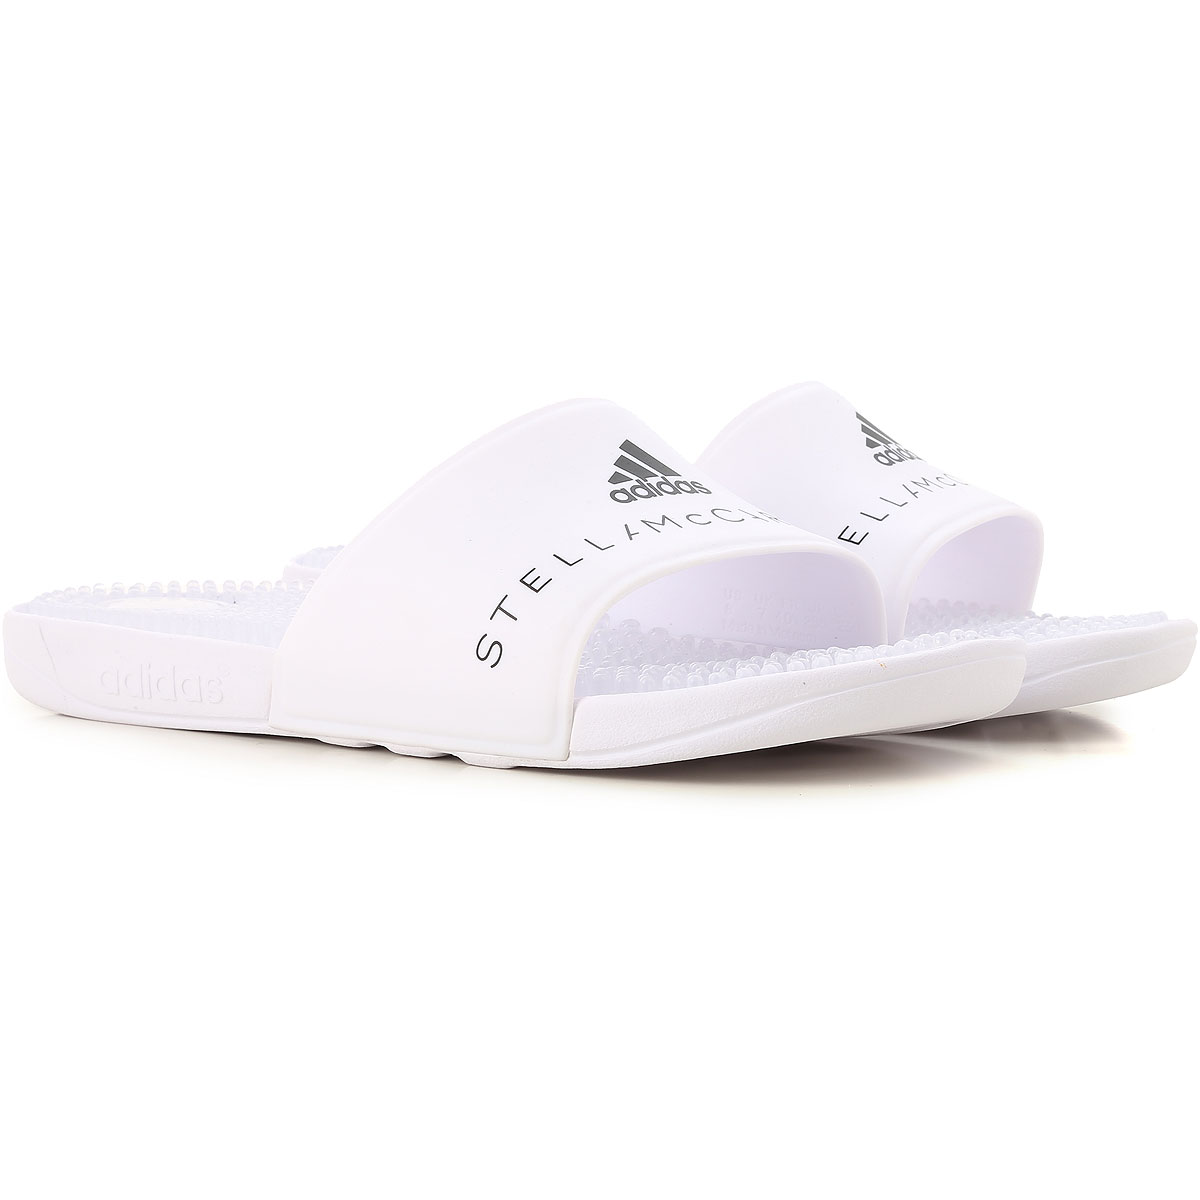 Image of Adidas Sandals for Women, Adissage, White, Rubber, 2017, US 5 - UK 4.5 - EU 37 US 6.5 - UK 6 - EU 39 US 8 - UK 6 1/2 - EU 40 US 8.5 - UK 7- EU 40.5 US 8 - UK 7.5 - EU 41 1/3 US 6 - UK 5.5 - EU 38 US 6 • UK 4.5 • EU 37.5 • J 230 • CHN 230